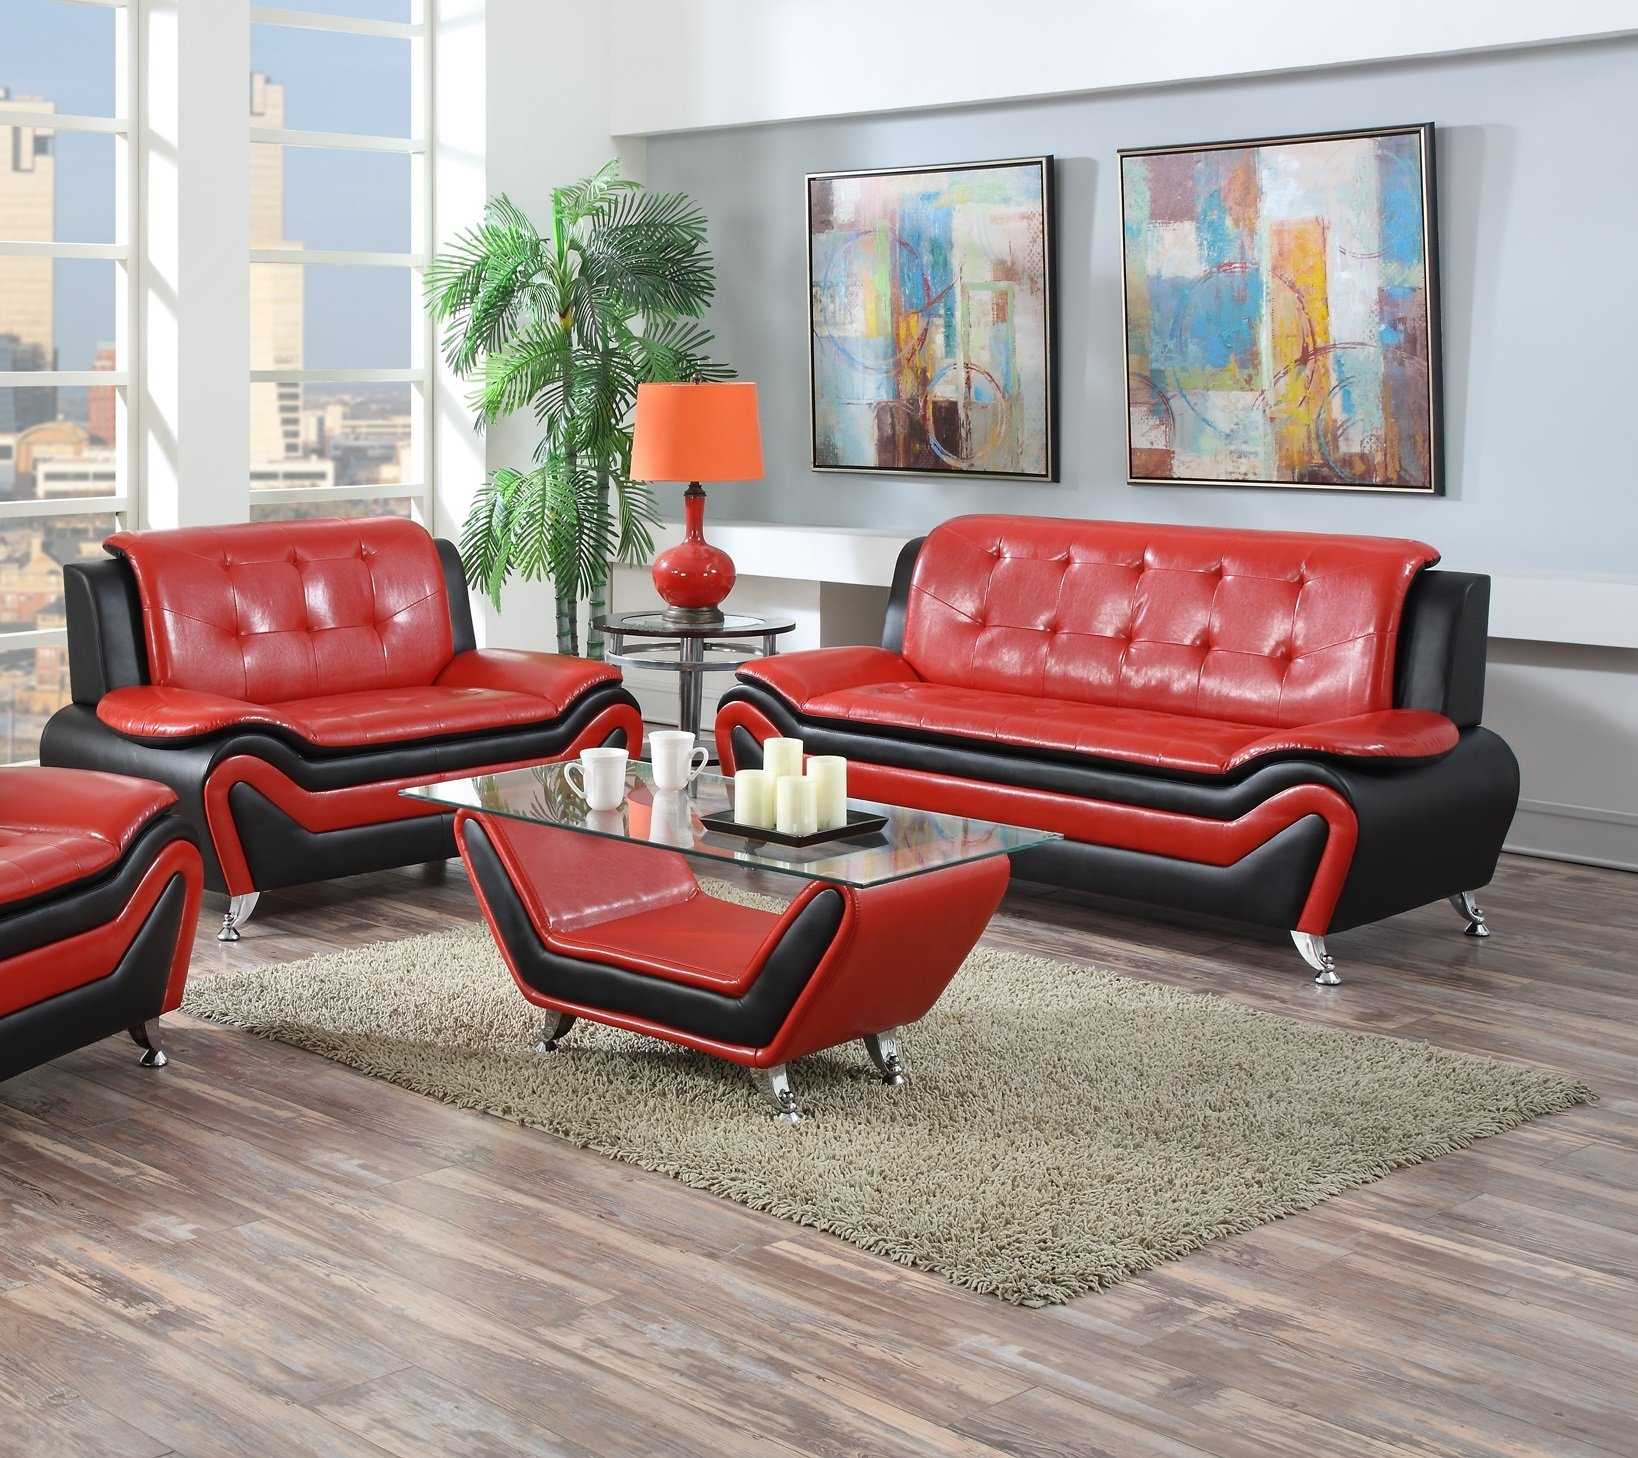 US Pride Furniture 2 Piece Modern Bonded Leather Sofa Set with Sofa and Loveseat, Red/Black by US Pride Furniture